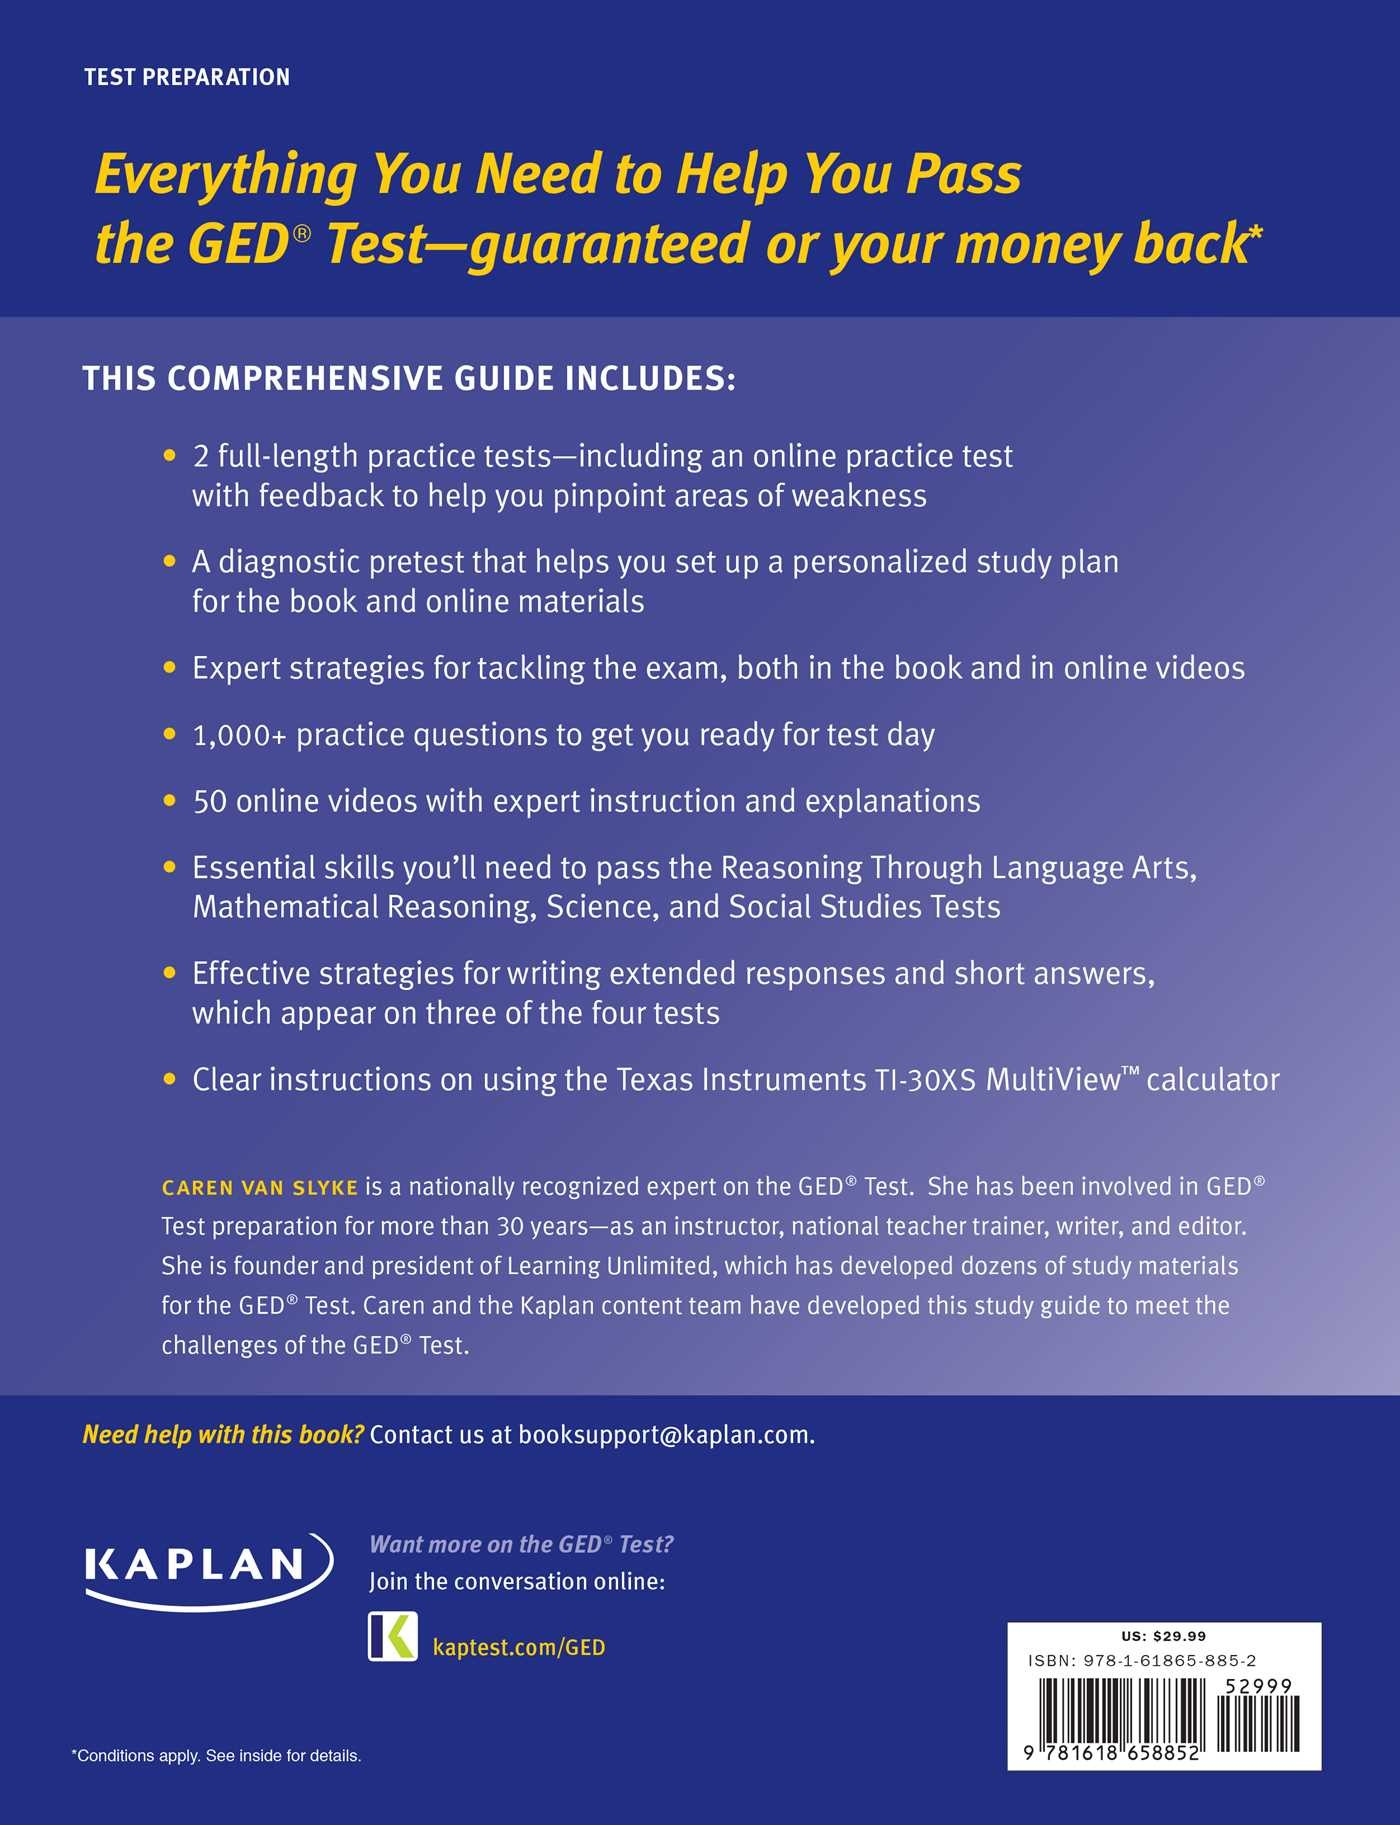 Kaplan-ged-test-premier-2015-with-2-practice-9781618658852.in01